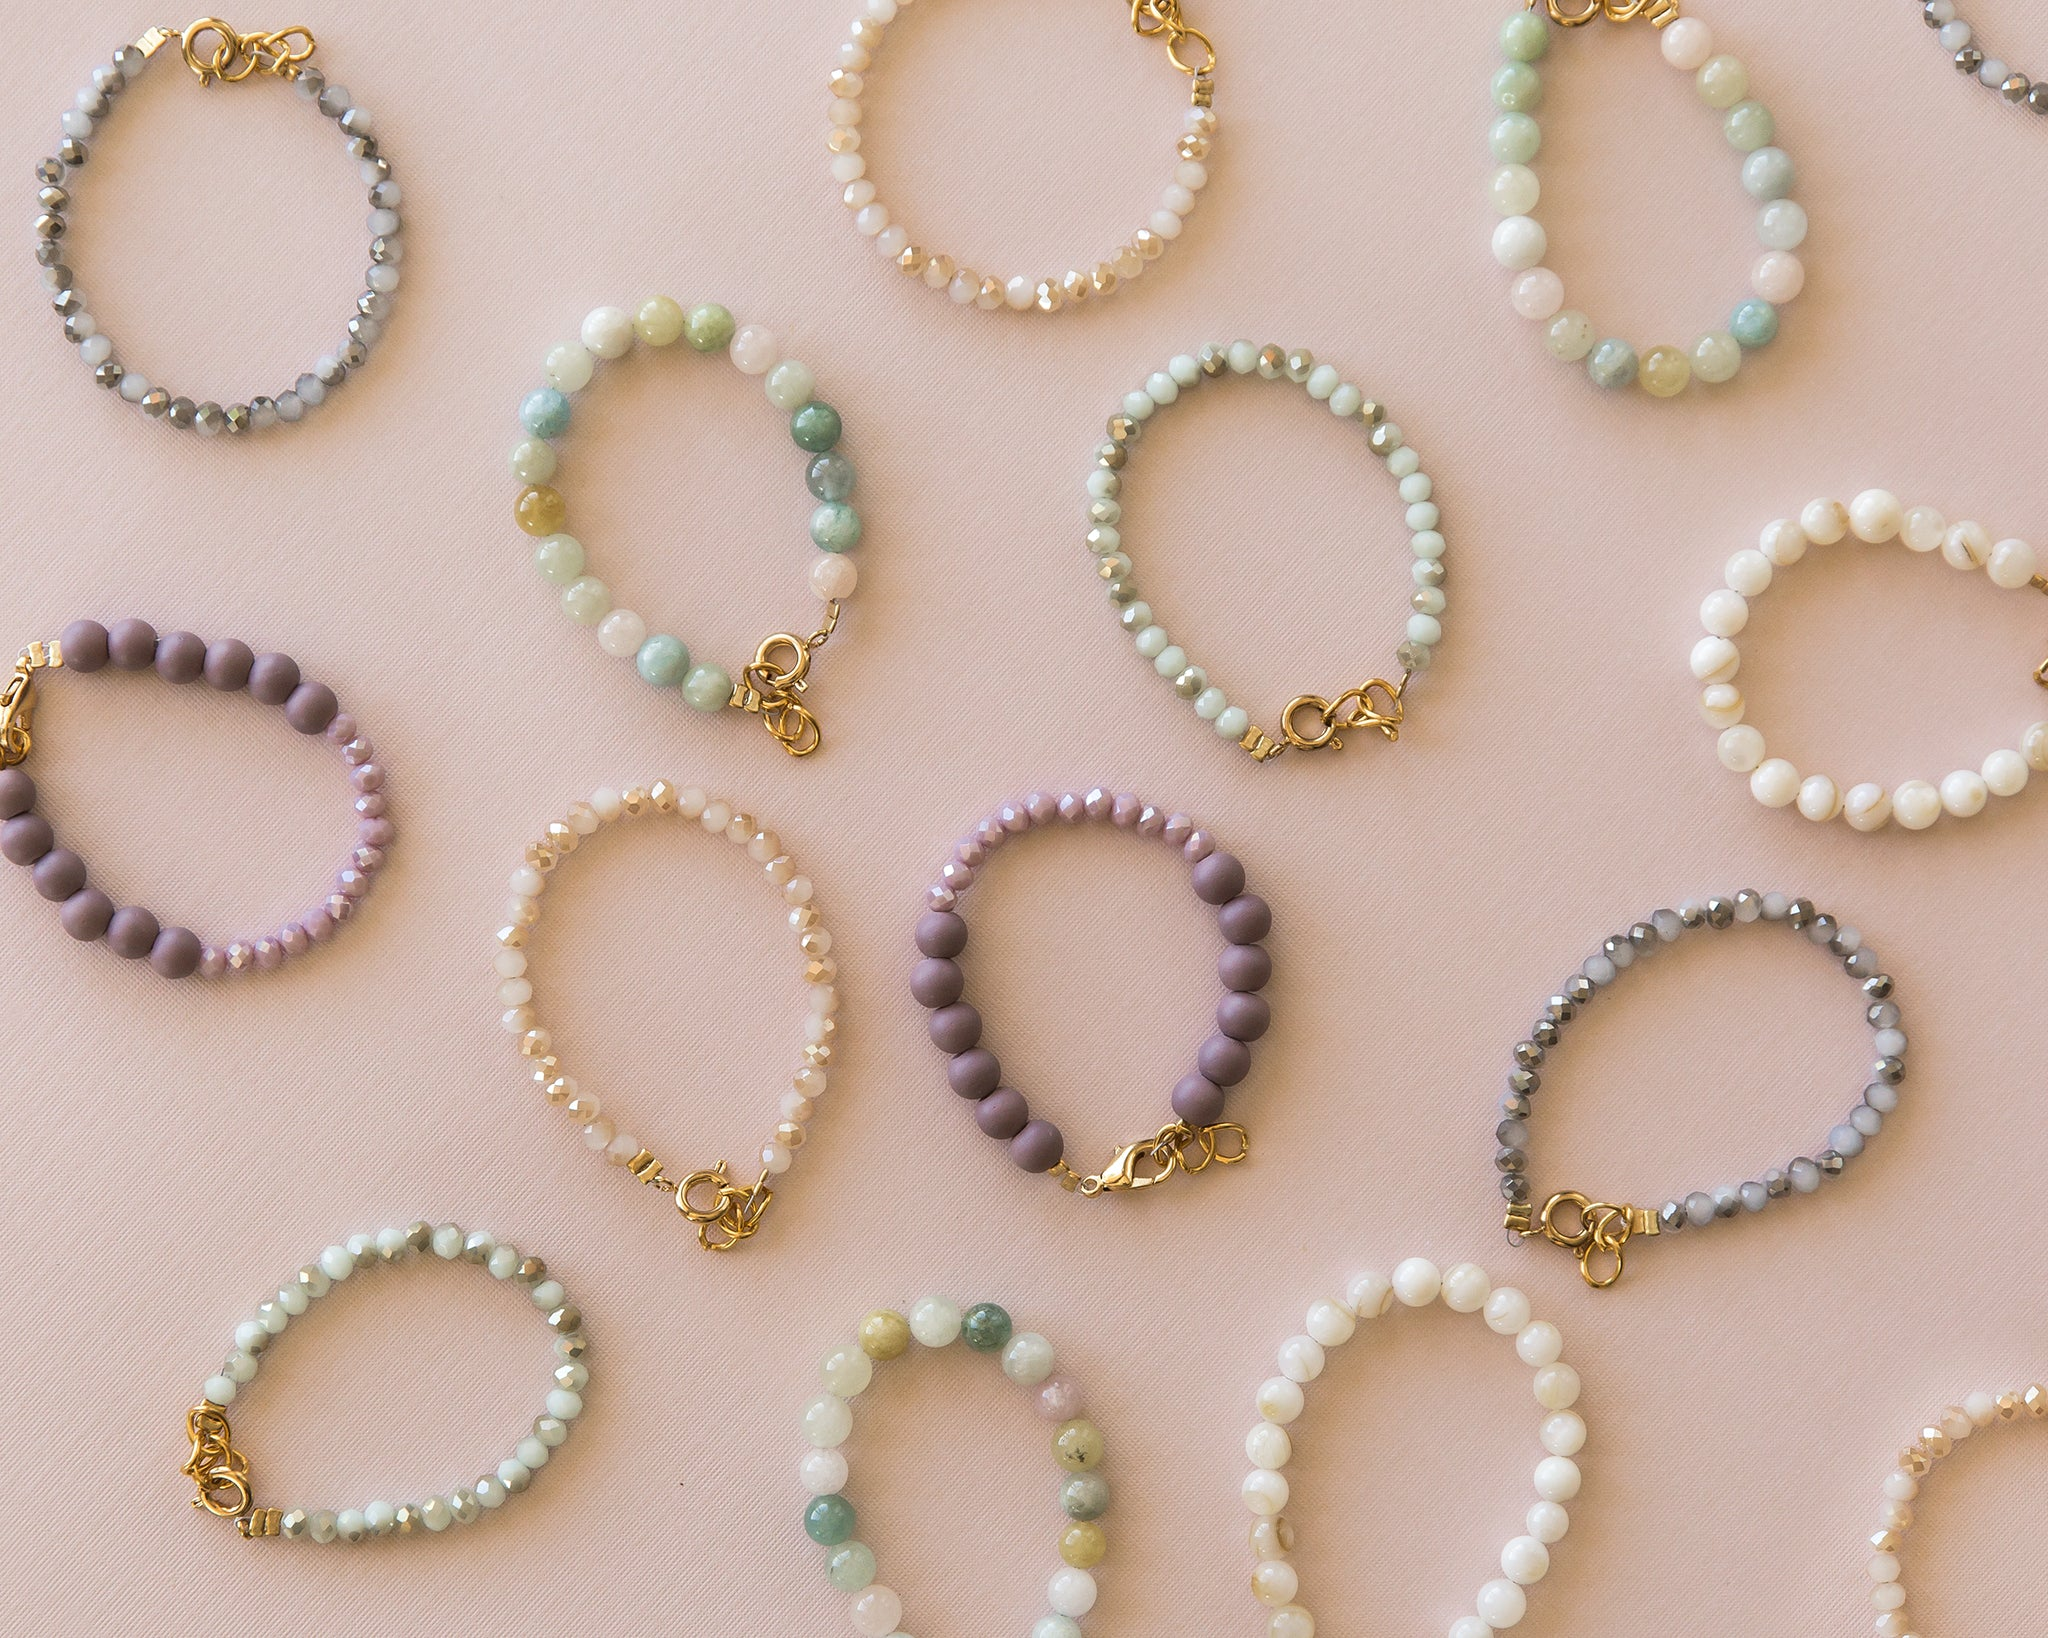 Mama & Me Gold & Pale Pink Bracelet - Reverie Threads